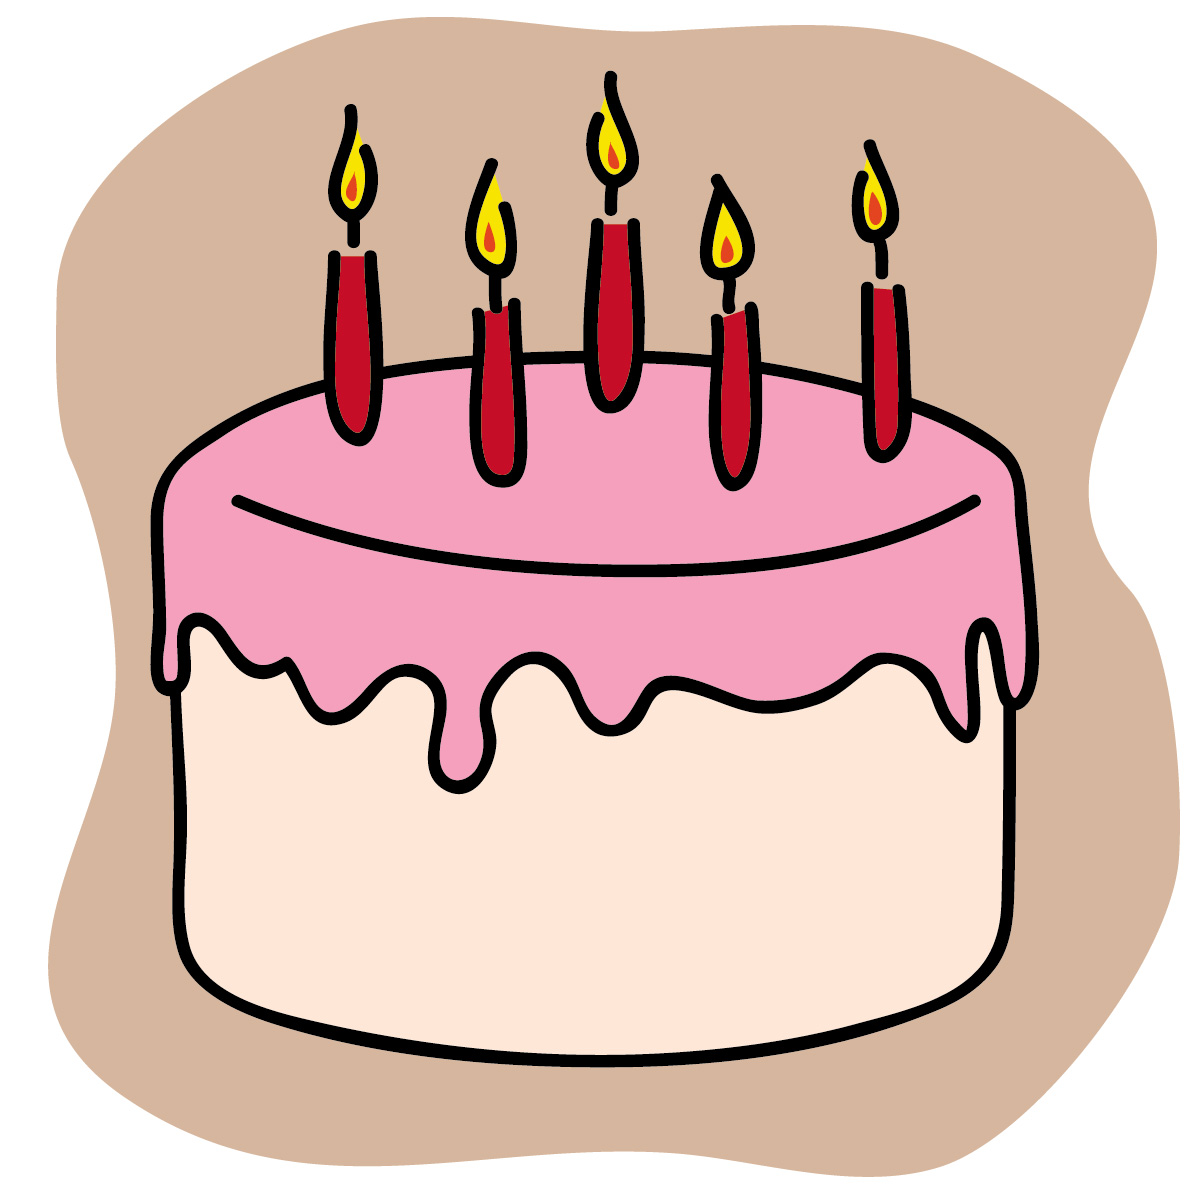 Free Birthday Cake Clip Art   Clipart Panda - Free Clipart Images